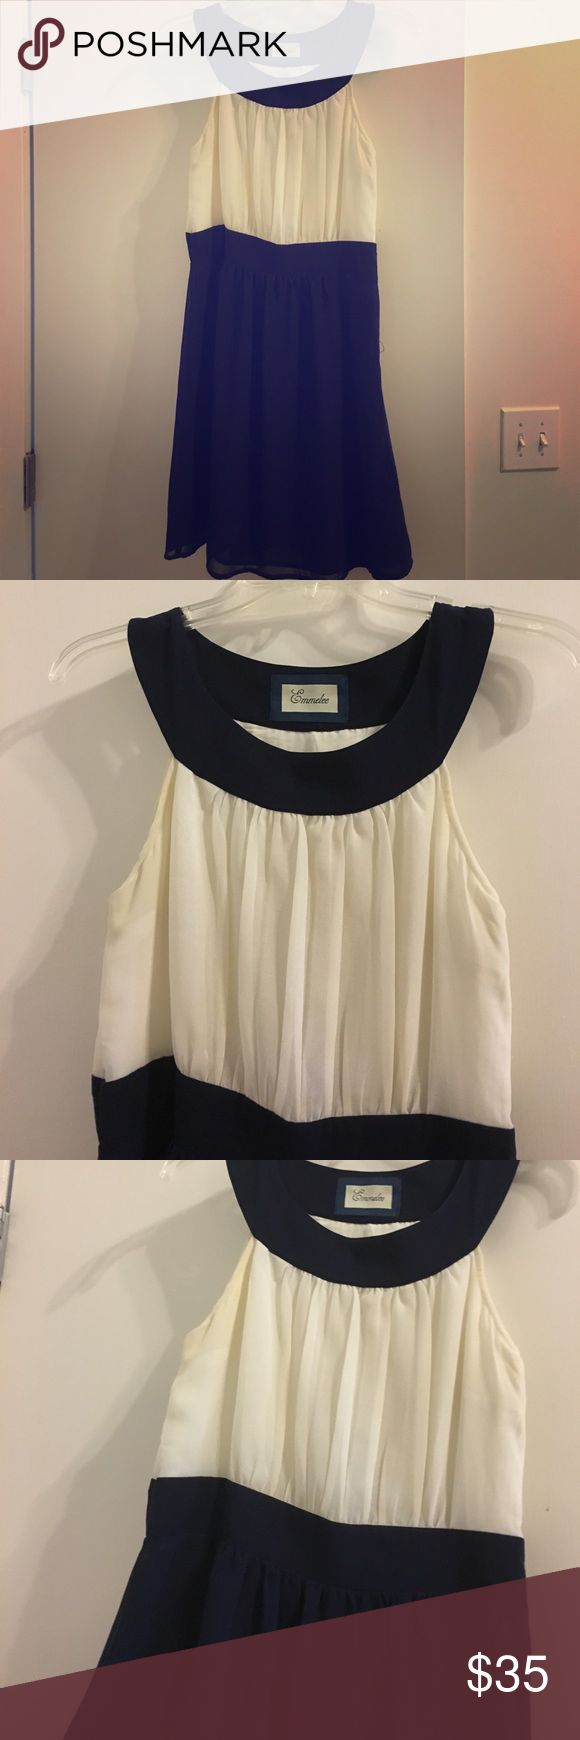 Francesca's grecian blue and white dress. Emmelee Grecian dress from Francesca's. Creme top, with navy bottom and collar. Perfect for summer cocktail parties. Perfect condition. Only worn once with a bright pink tea hat to racehorse. Perfect to accessorize Francesca's Collections Dresses